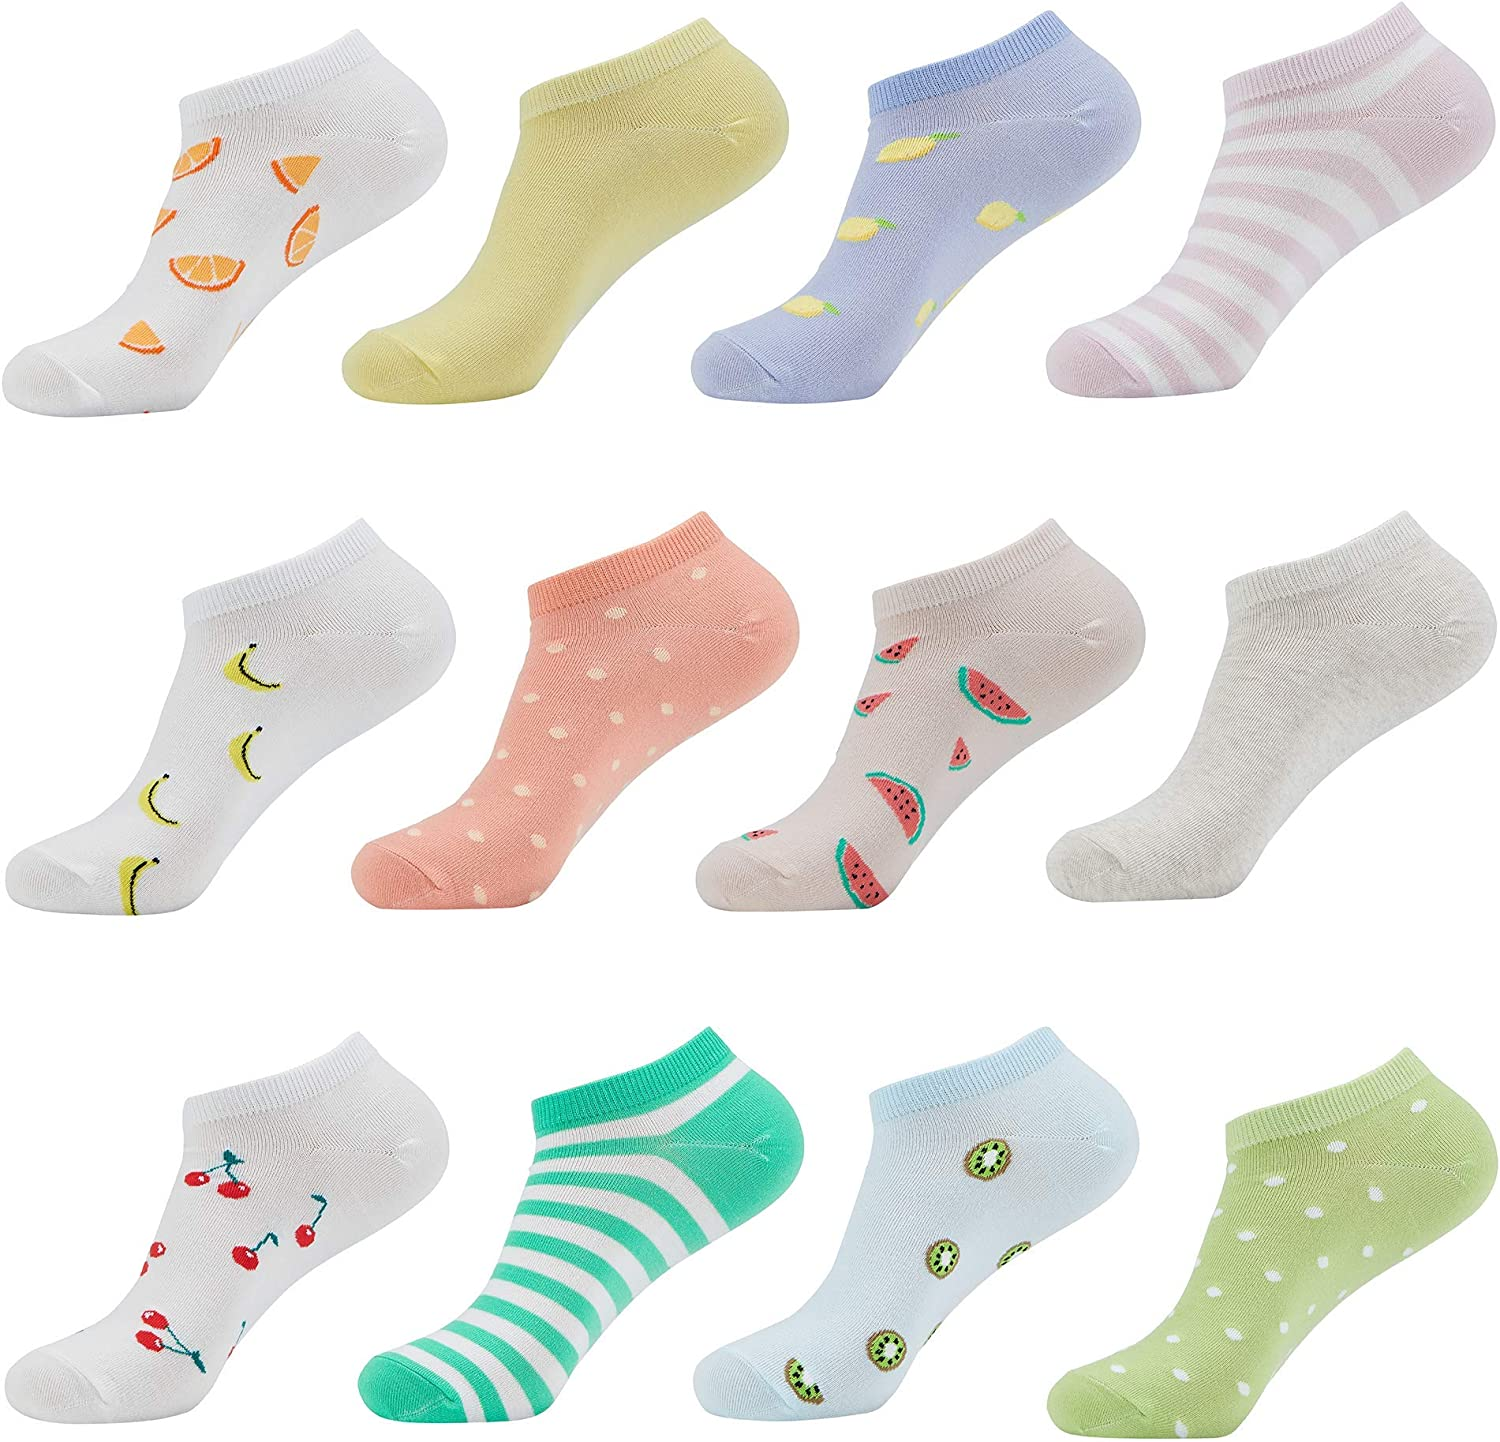 M MONFOOT 10/12 Pairs Eco-Friendly Fun Casual Low Cut Ankle Socks for Women and Men